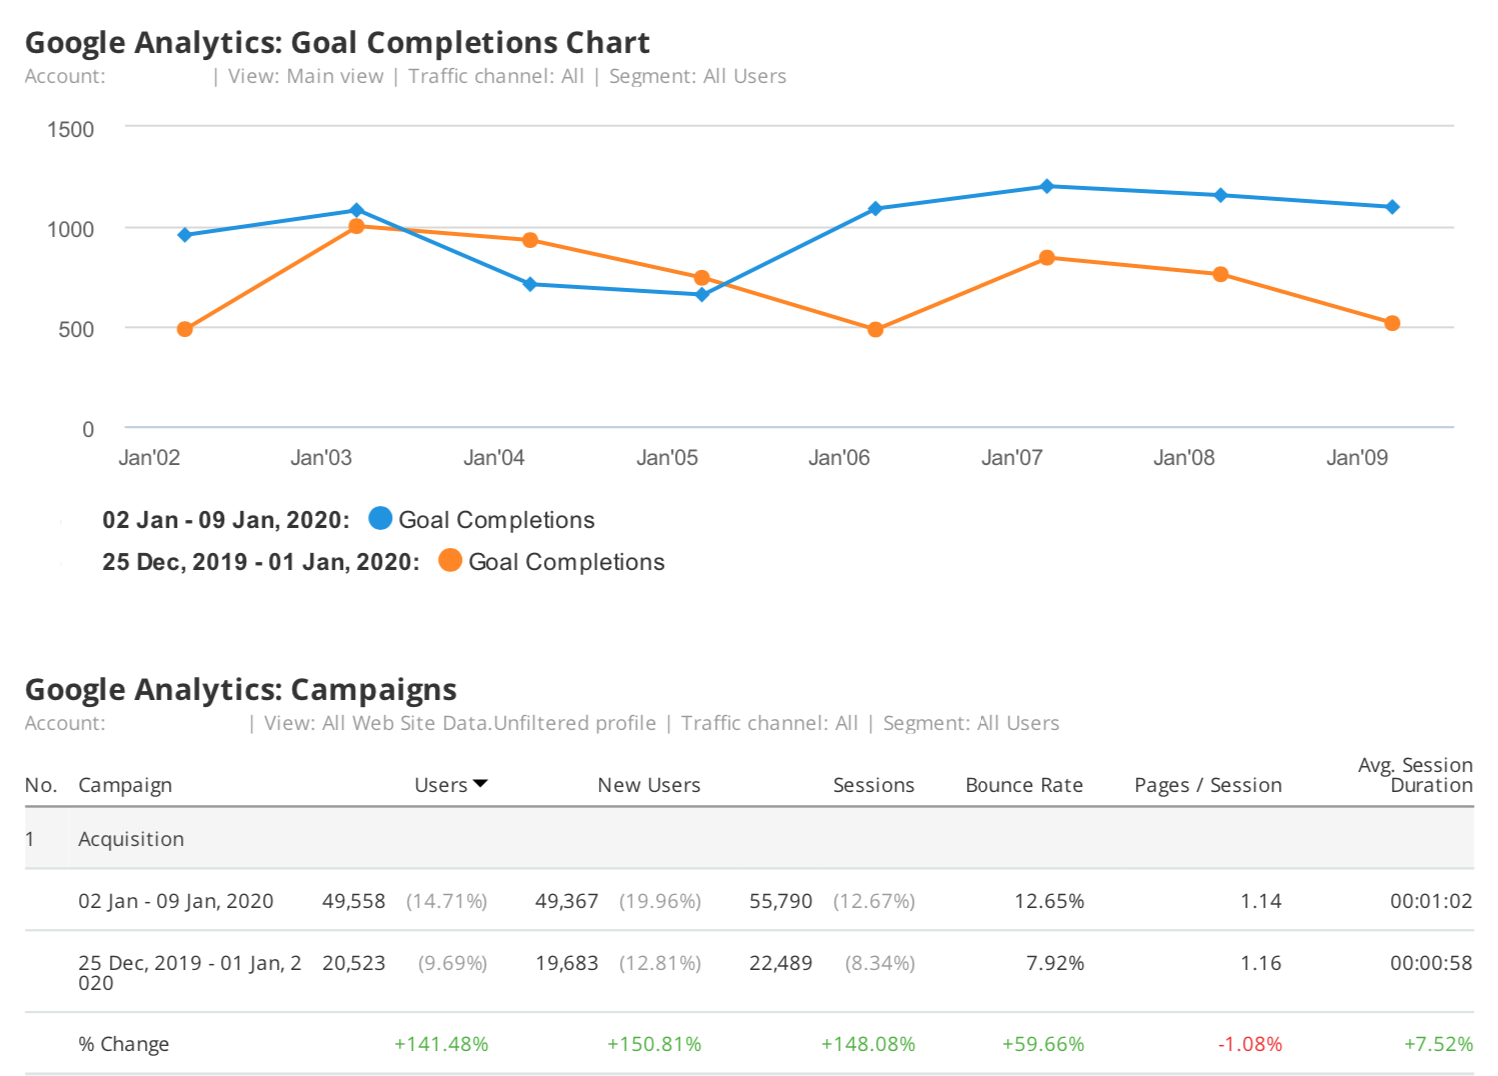 9 Marketing Report Templates and Examples for Daily, Weekly, and Monthly Reporting. Image 6